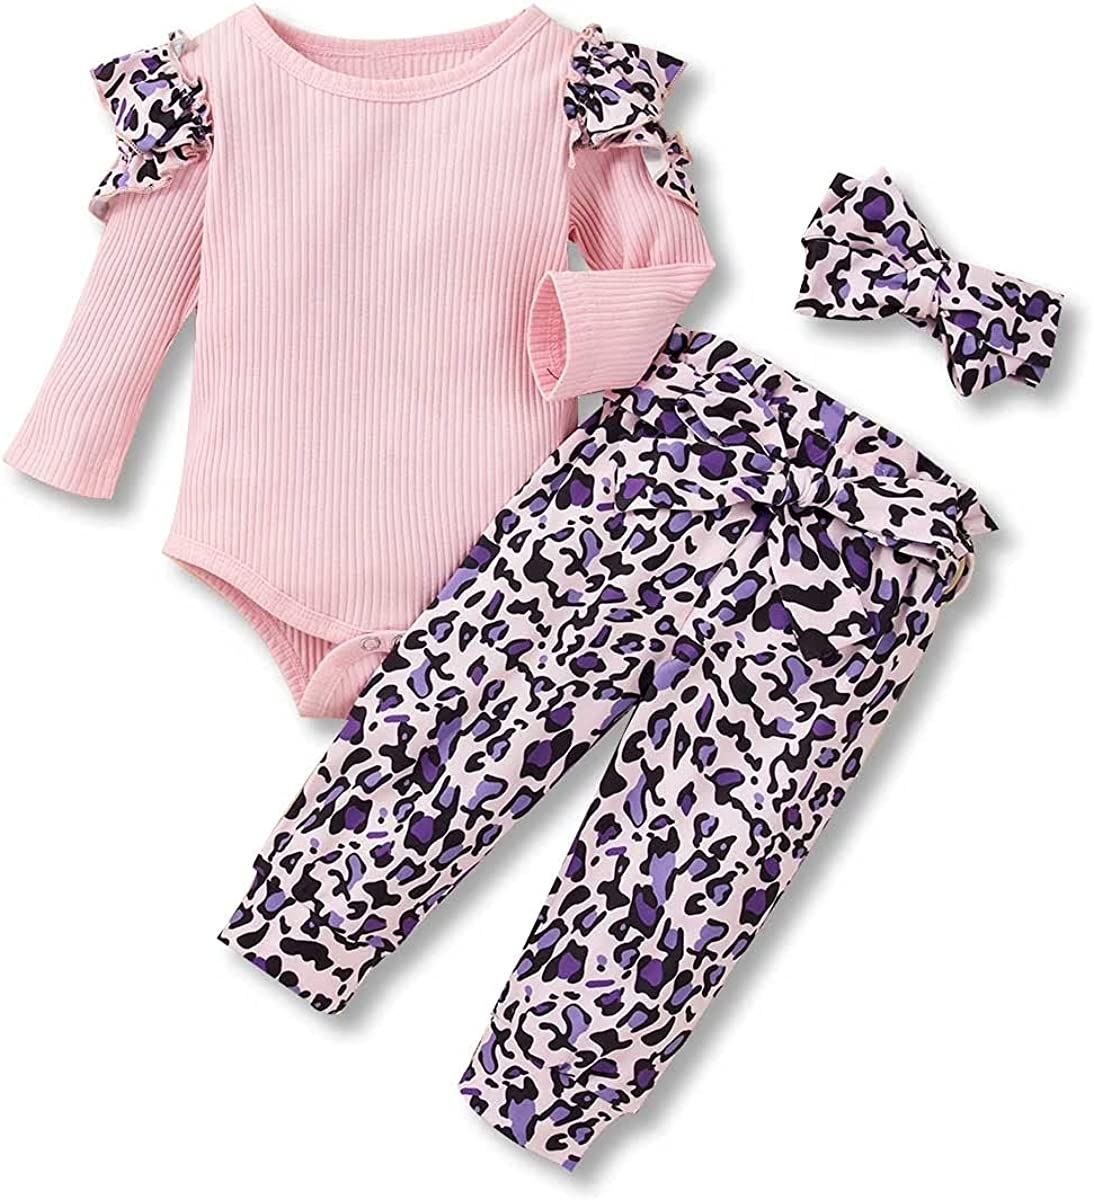 Infant Baby Girl Clothes Long Sleeve Ribbed Romper Outfits Newborn Girl Clothes Cute Floral Pants 3Pcs Set